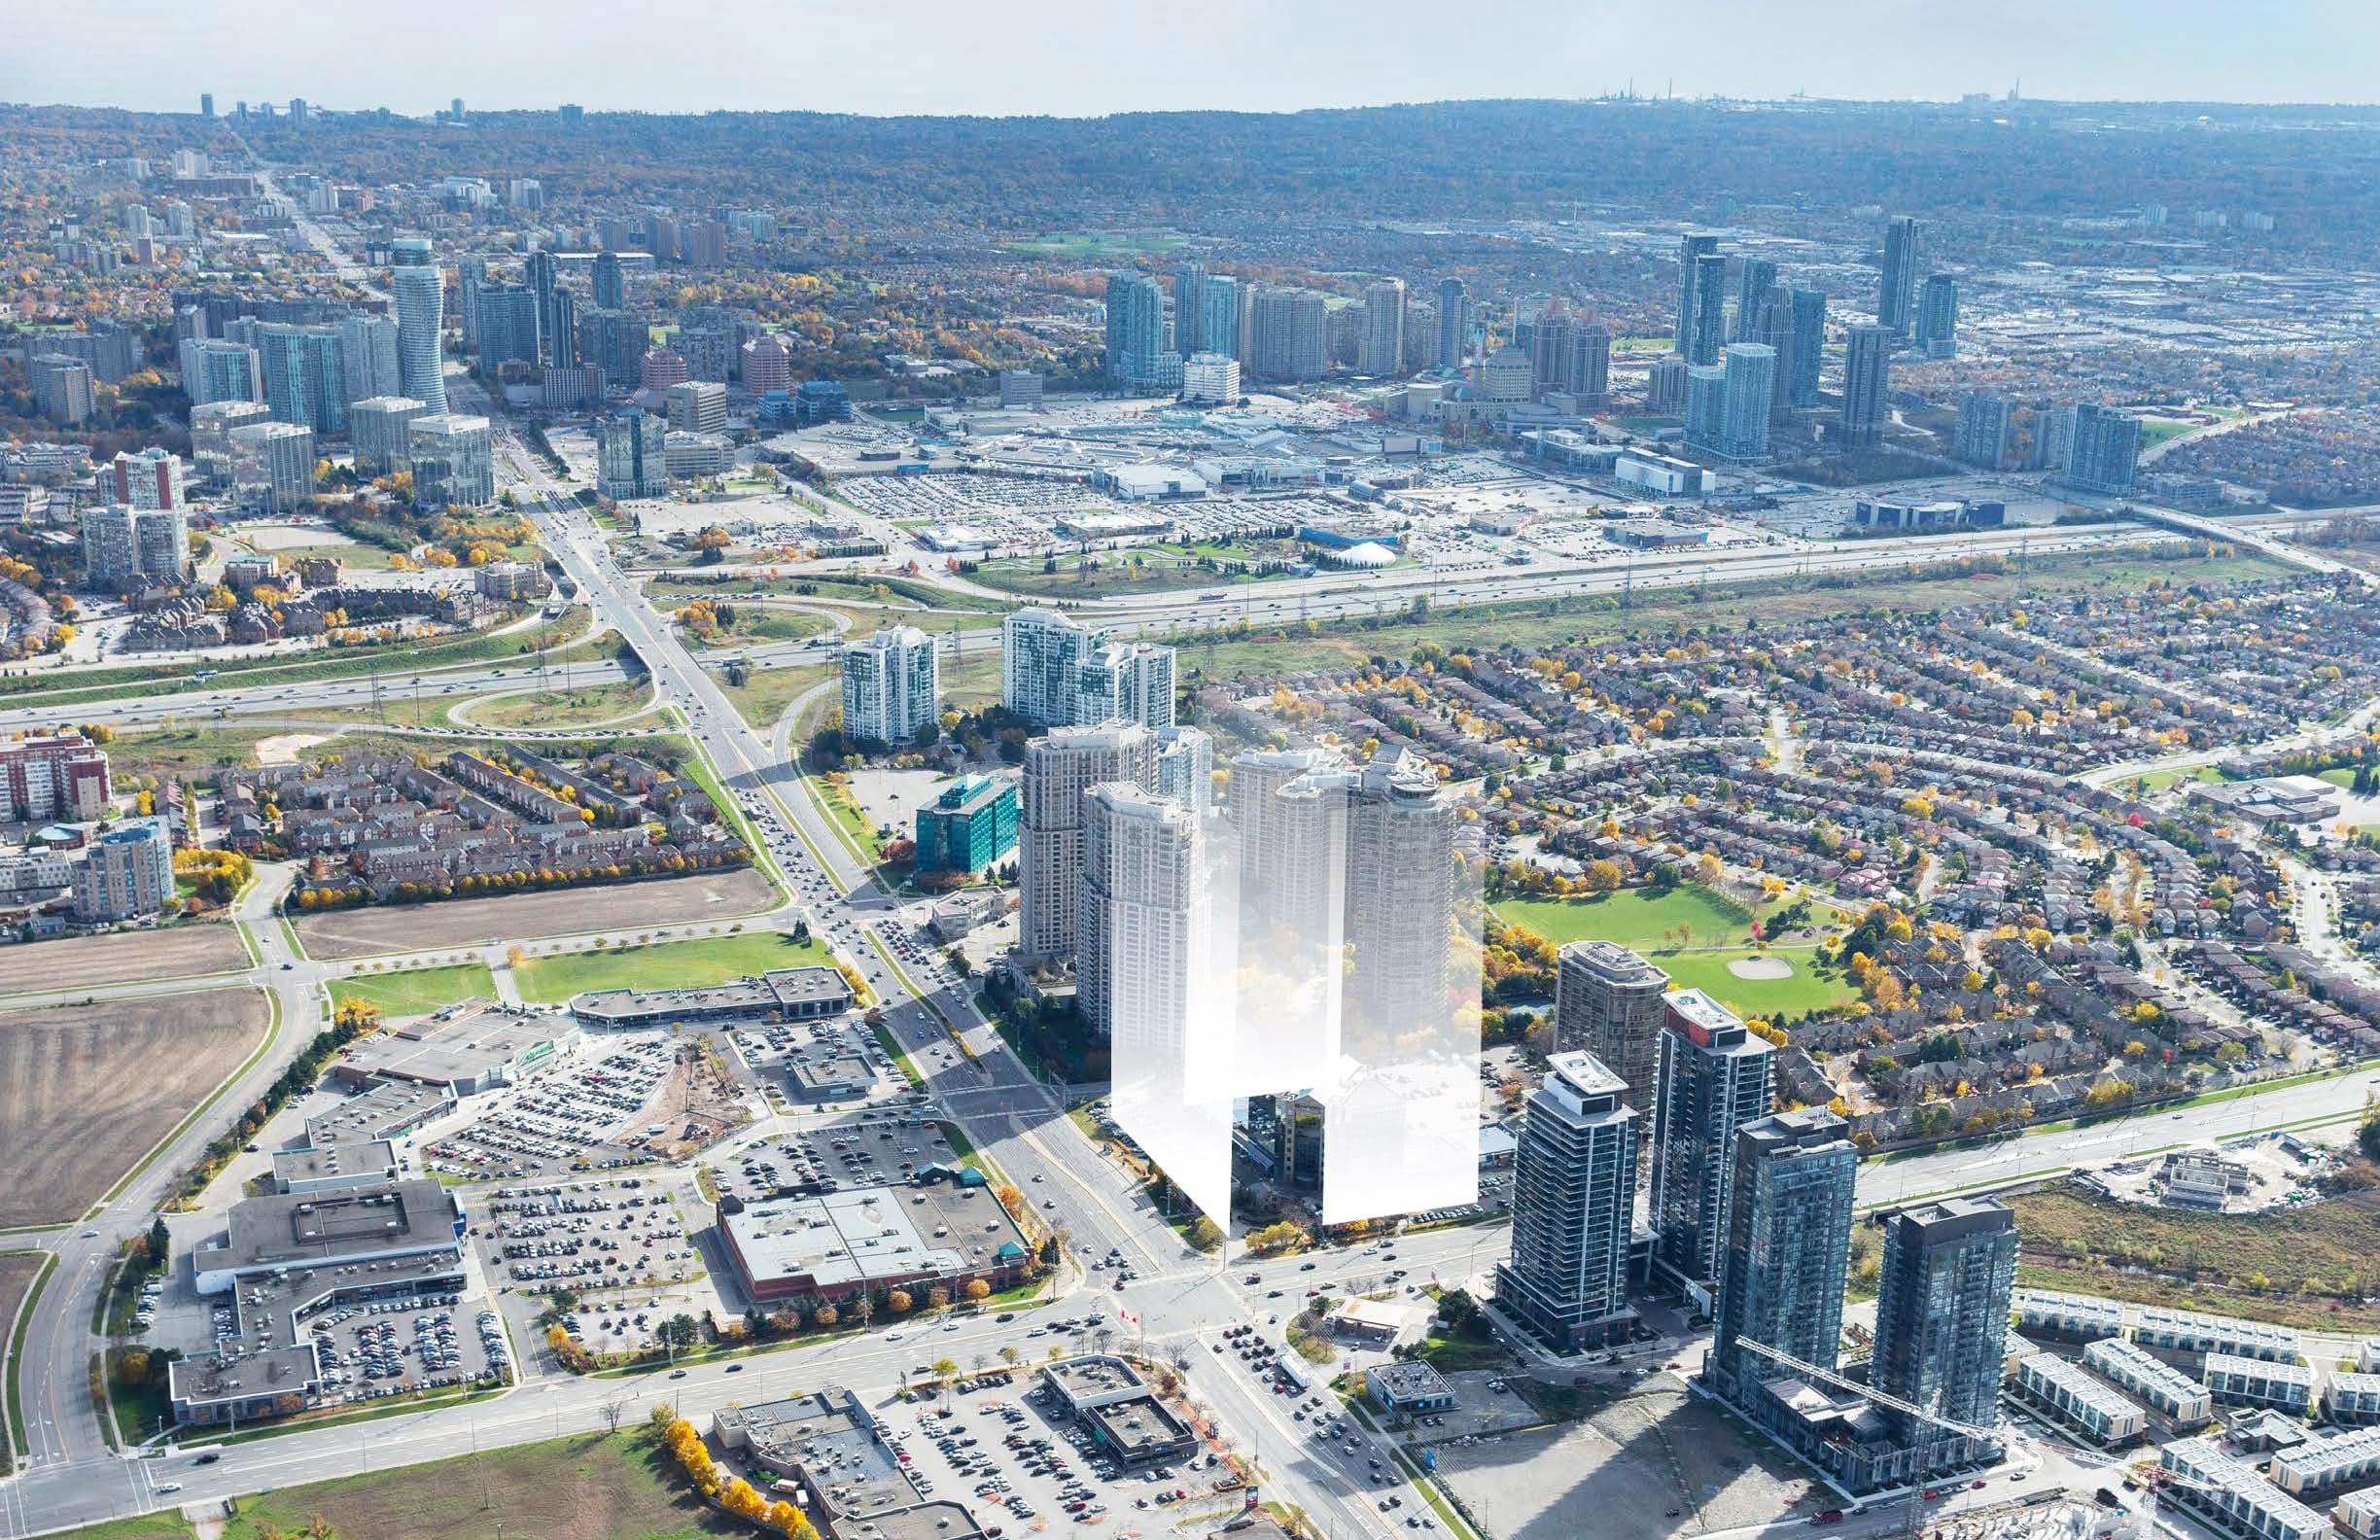 Three Towers at 30 Eglinton Avenue West Mississauga 30 eglinton ave w mississauga condos square one hurontario lrt